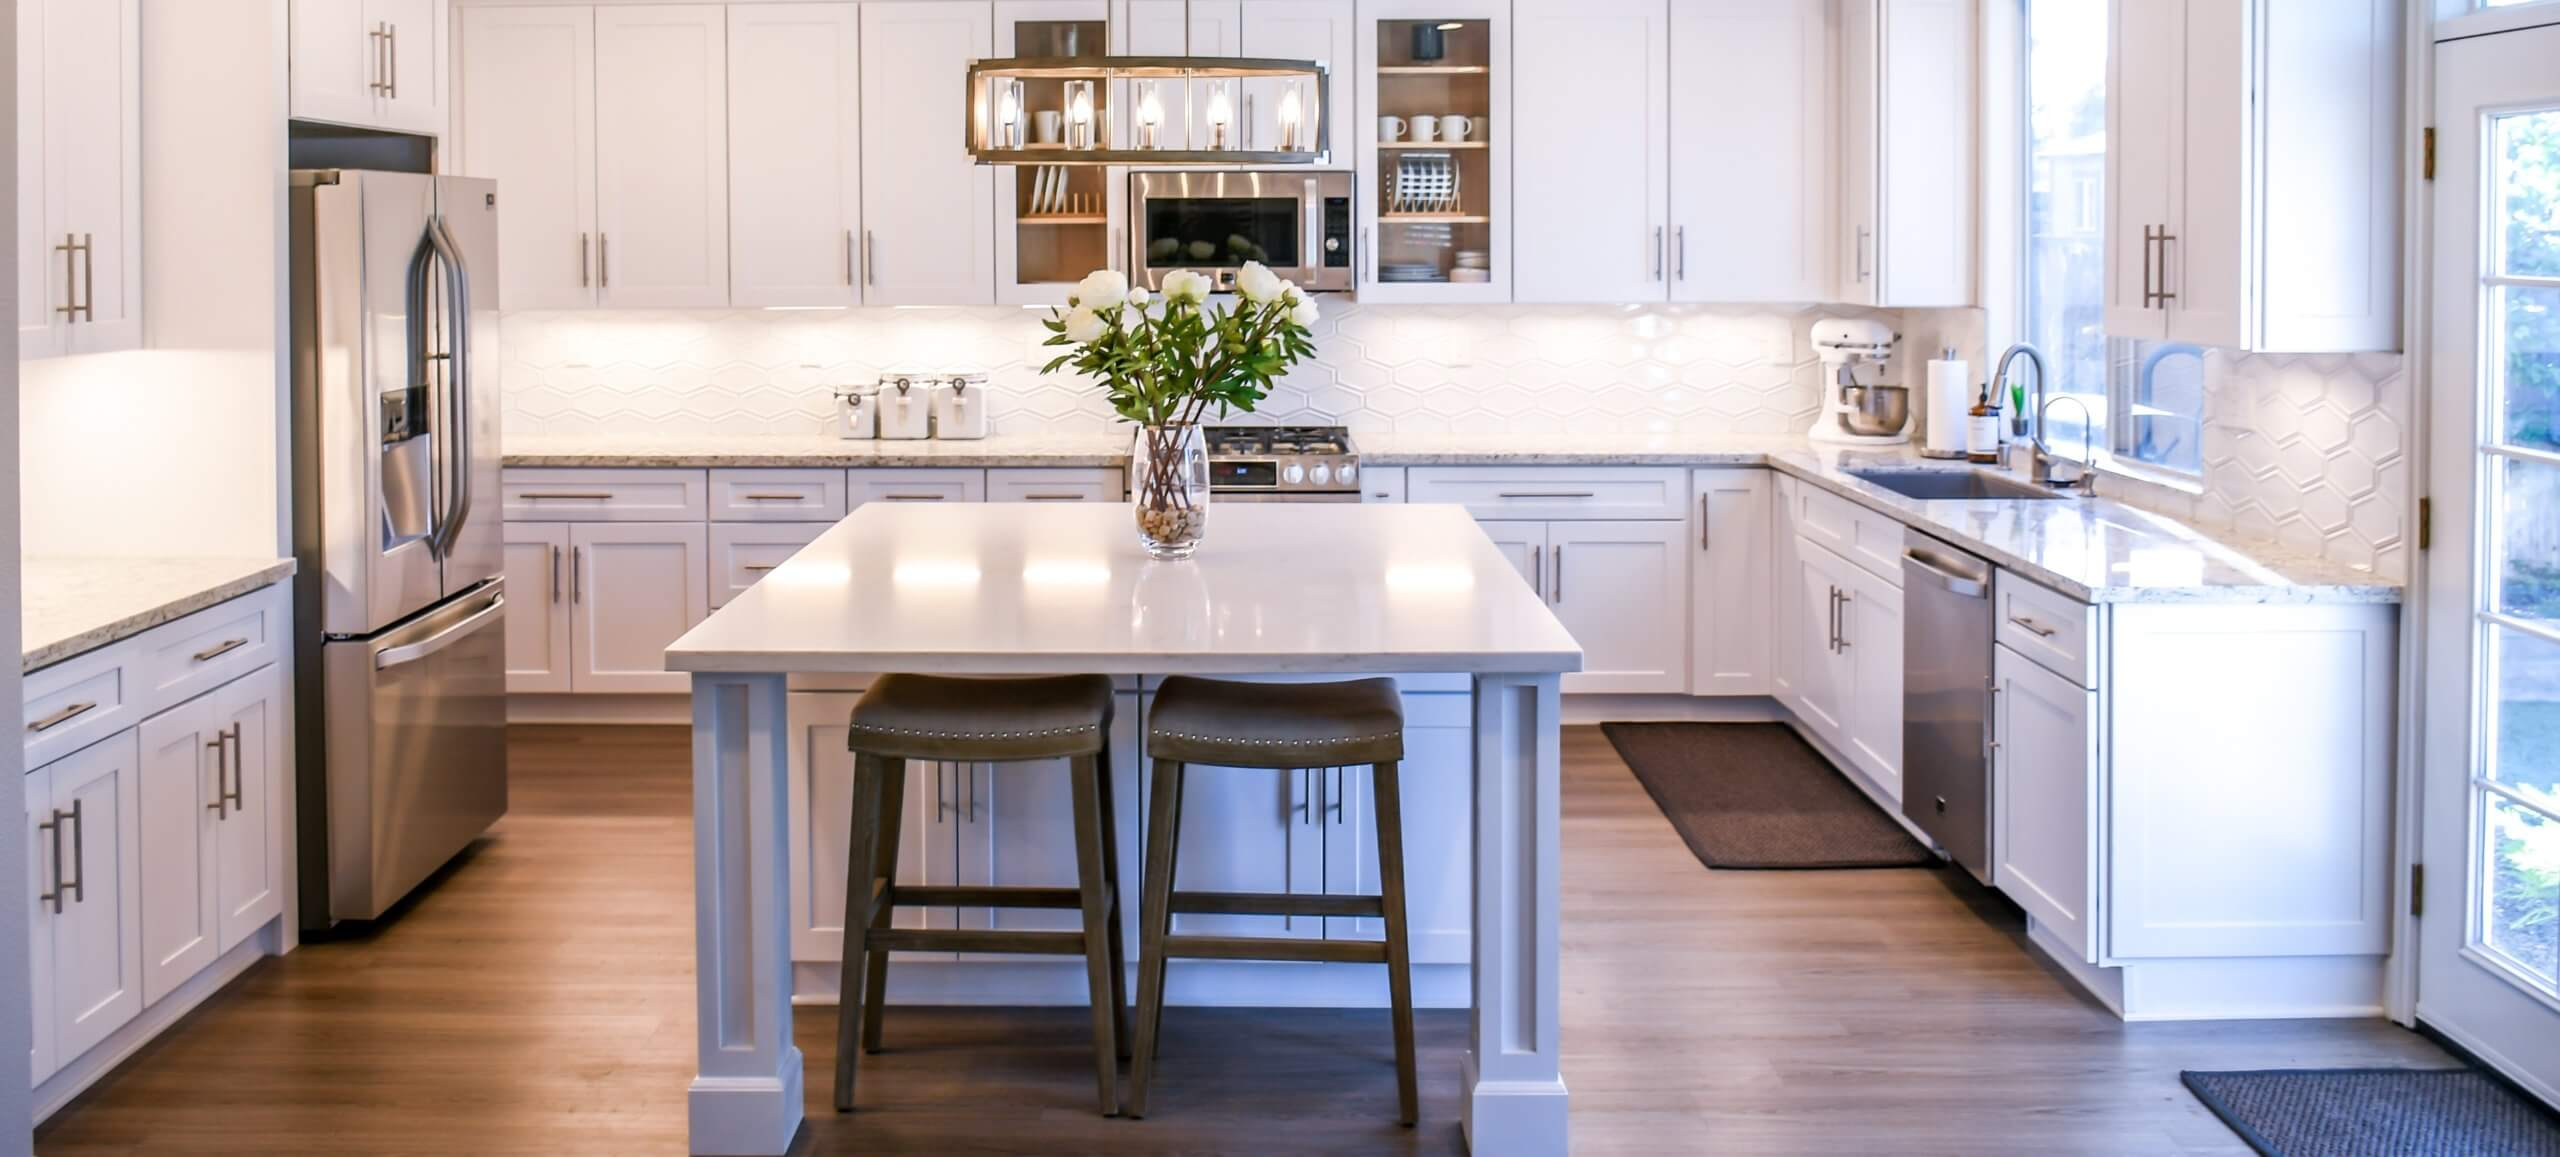 Kitchen Remodeling Contractors: 6 Signs that your Kitchen is Ready for Remodel